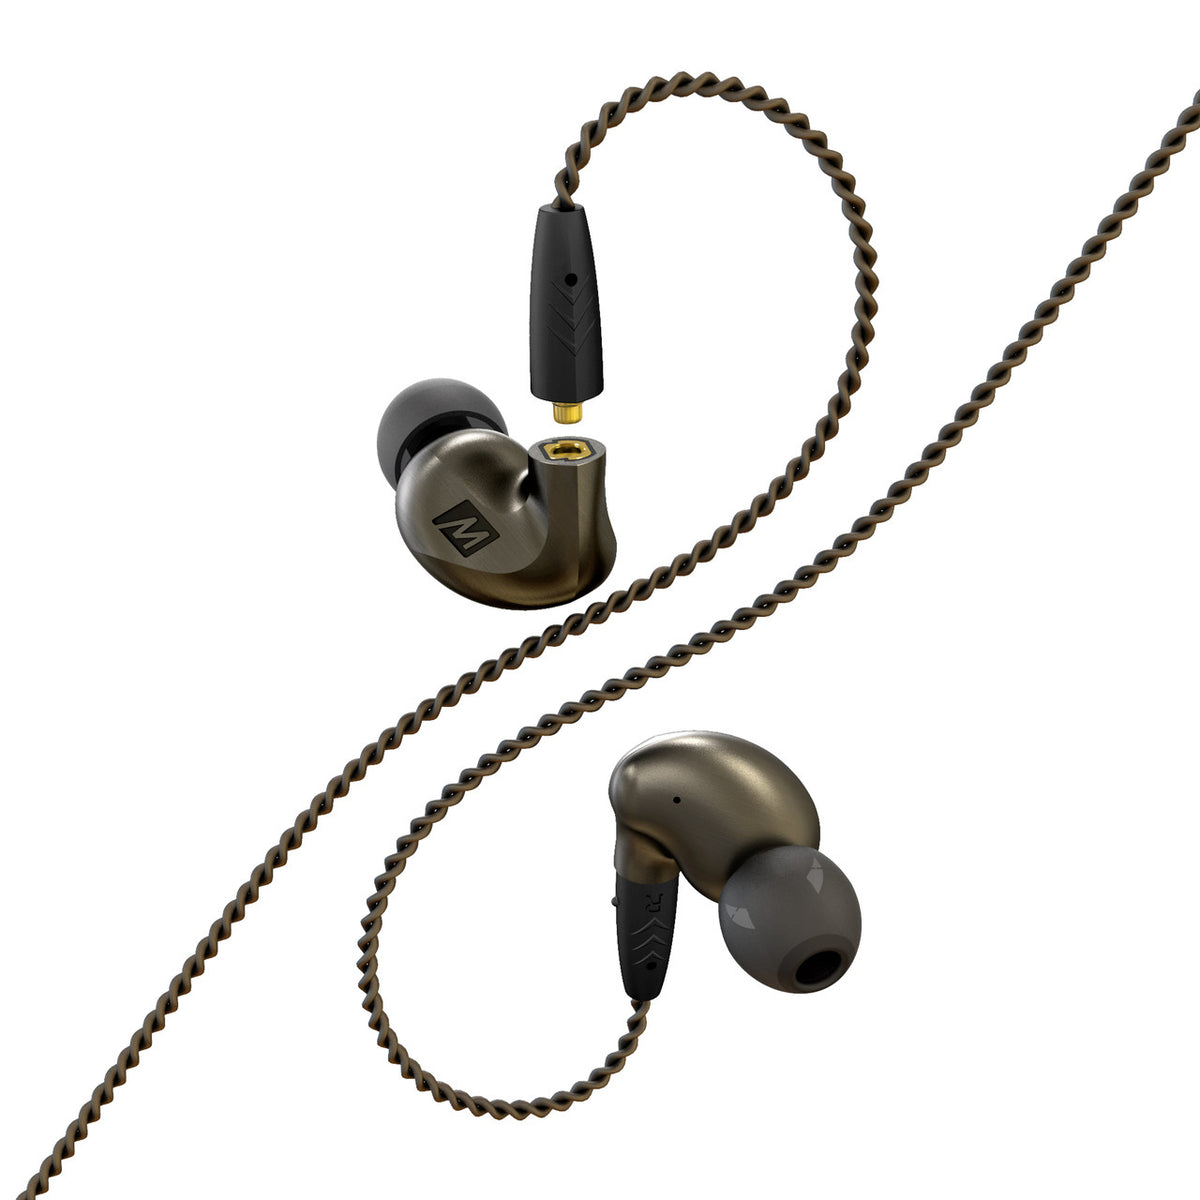 MEE audio: Pinnacle P1 High Fidelity Audiophile In-Ear Headphones - Zinc